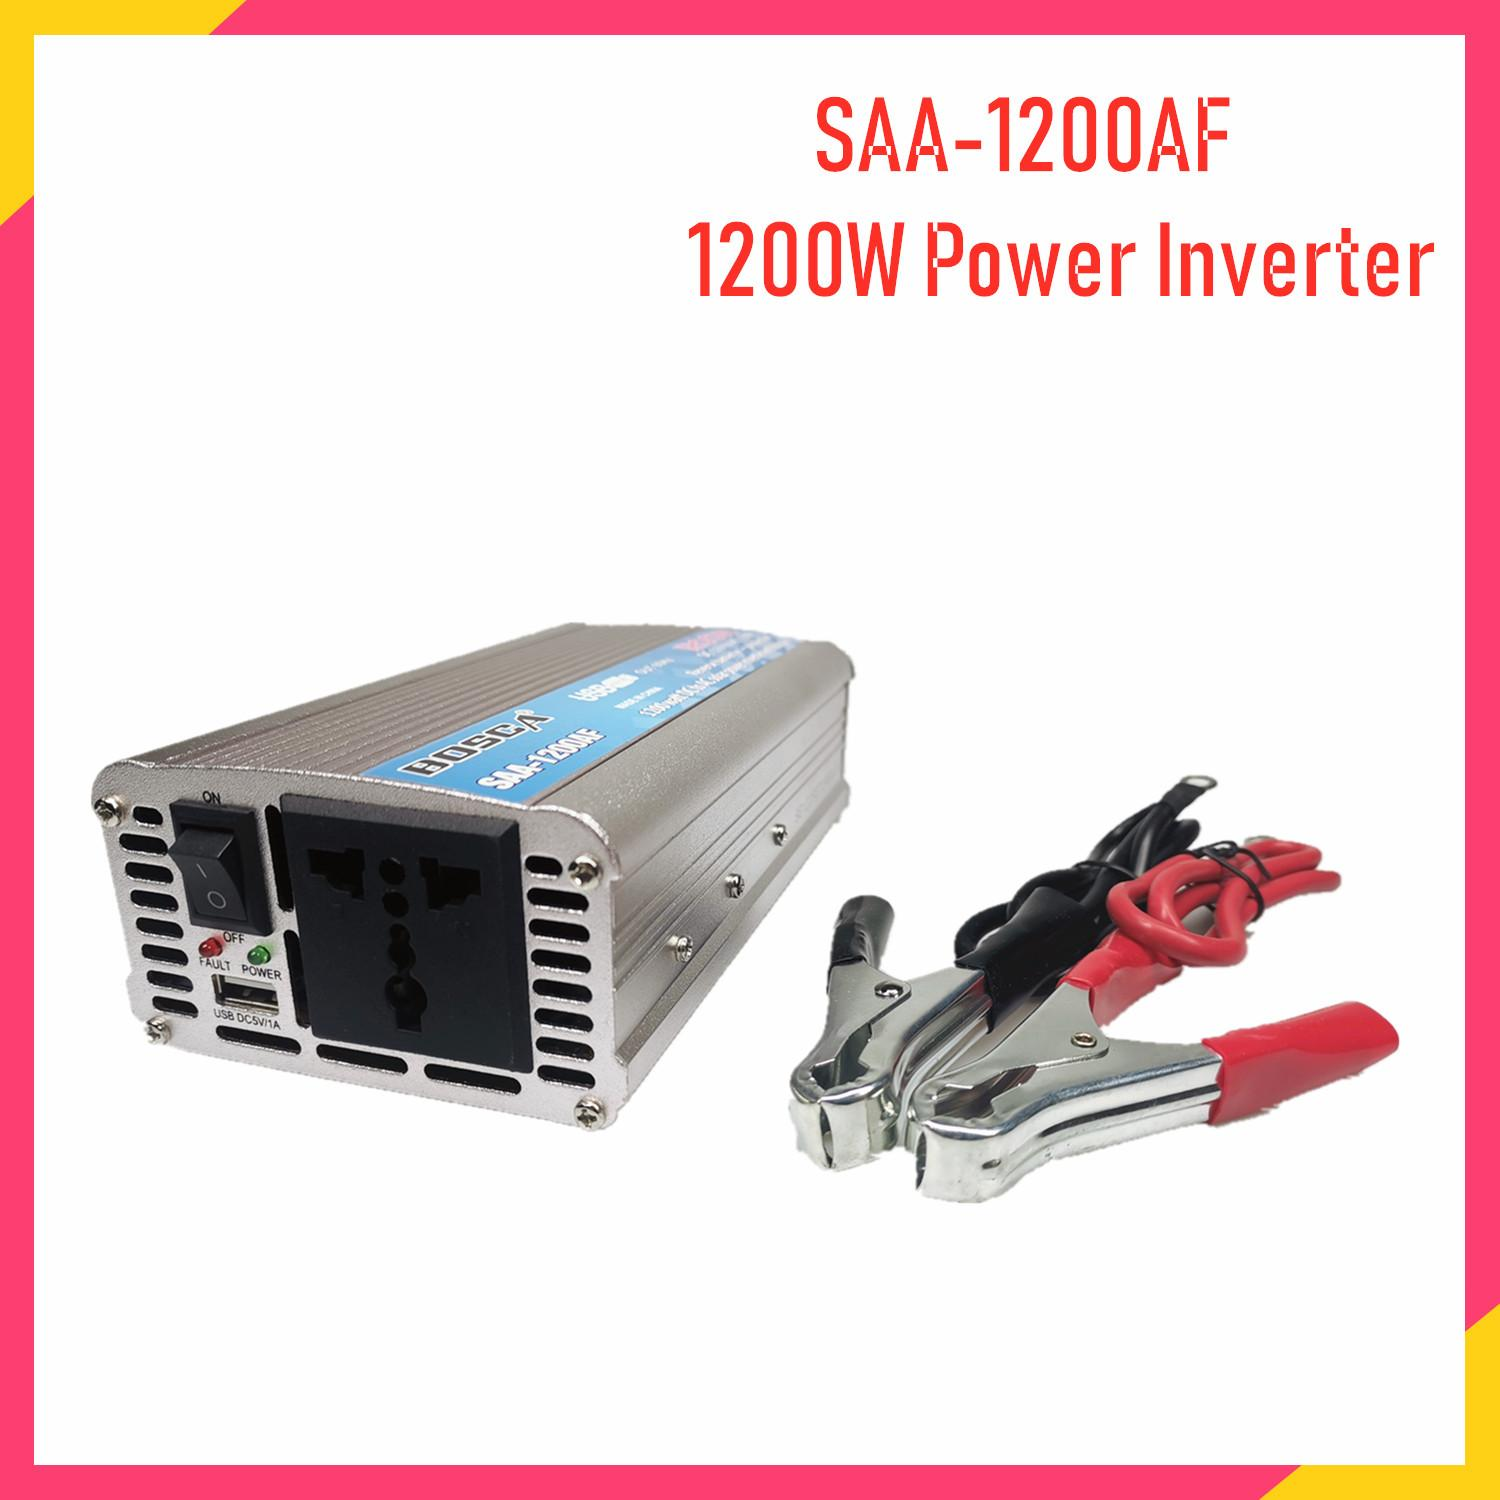 Bosca Solar Power Inverter 1200 Watt DC 12V To AC 220-230V Car Volt  Converter with Buzzer USB Charger For Home Use SAA-1200AF